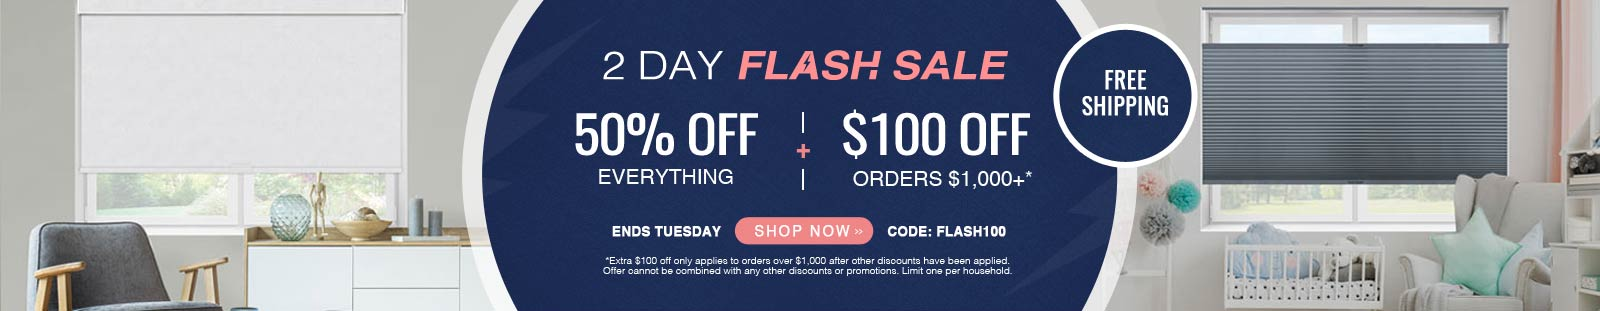 50% off everything + $100 off orders $1000+